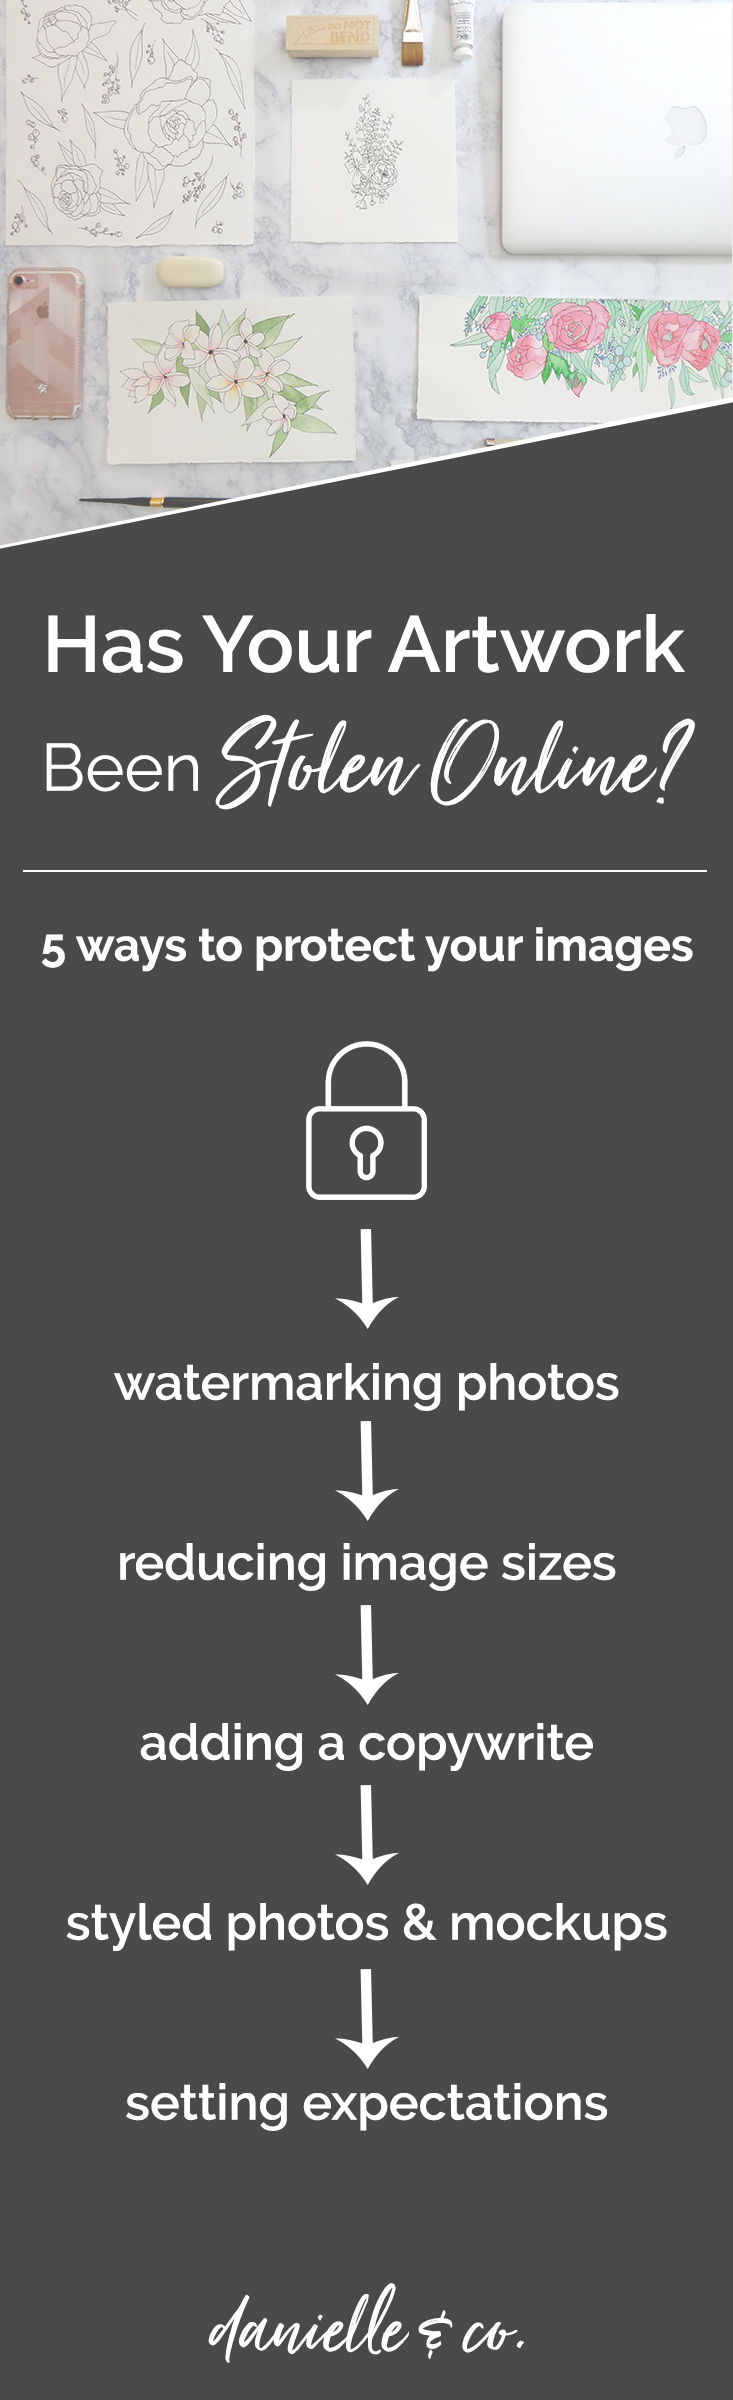 Are your photographs and art images at risk of being stolen online? Check out these five strategies for protecting your images on danielleandco.com + a video tutorial on two ways to easily add a watermark to your photos!